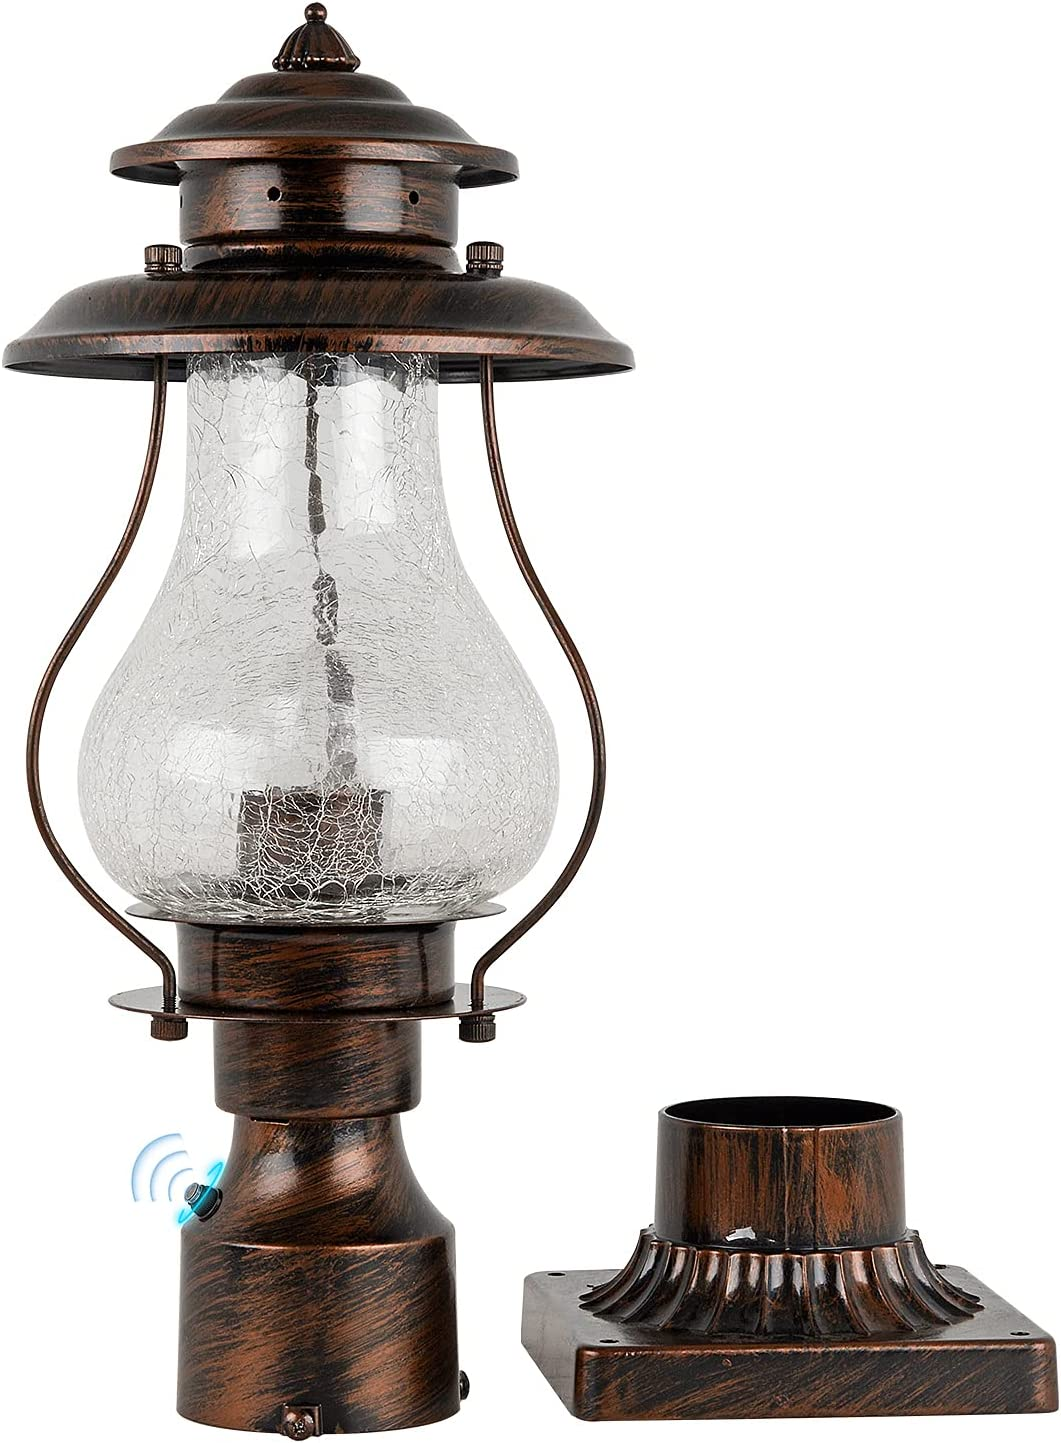 Dusk to Dawn Outdoor Post Lantern Photocell Sensor Rustic Pole Mount Lights with Pier Mount Adapter, Oil Rubbed Brown with Crackle Glass Waterproof Pillar Lights for Patio, Garden, Porch and Backyard